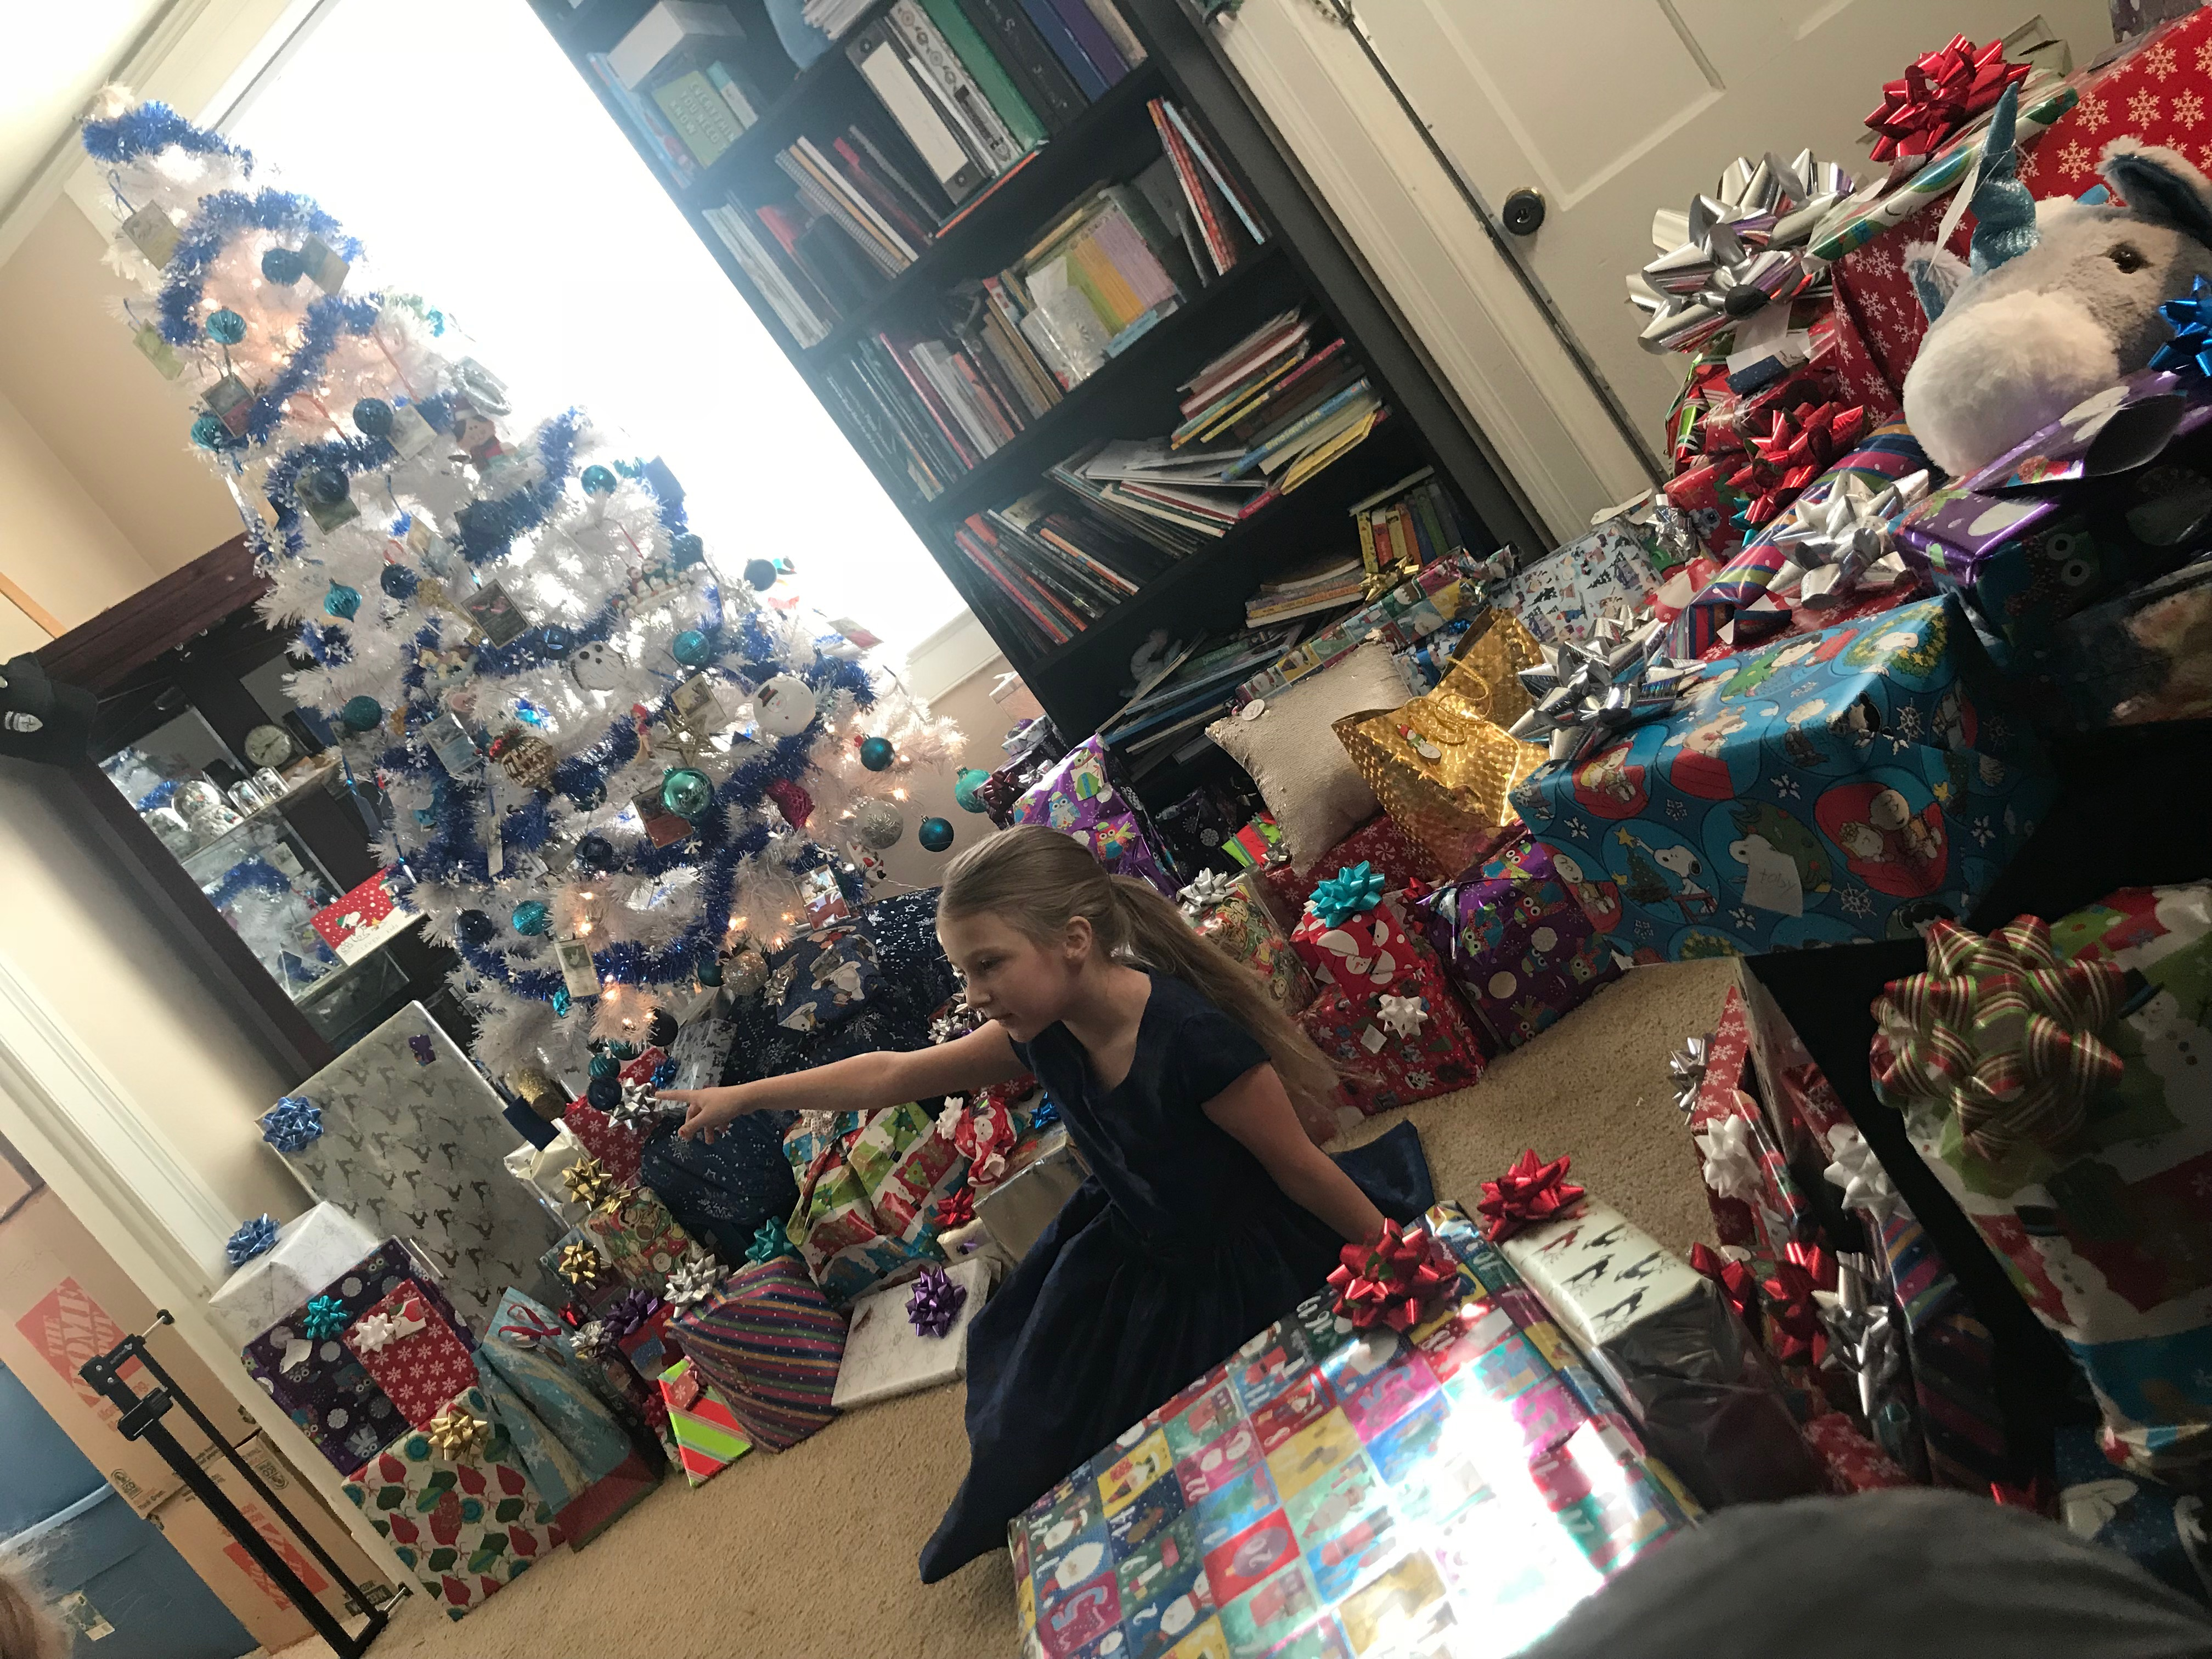 Christmas morning - Too many gifts? Science shows less toys is ...